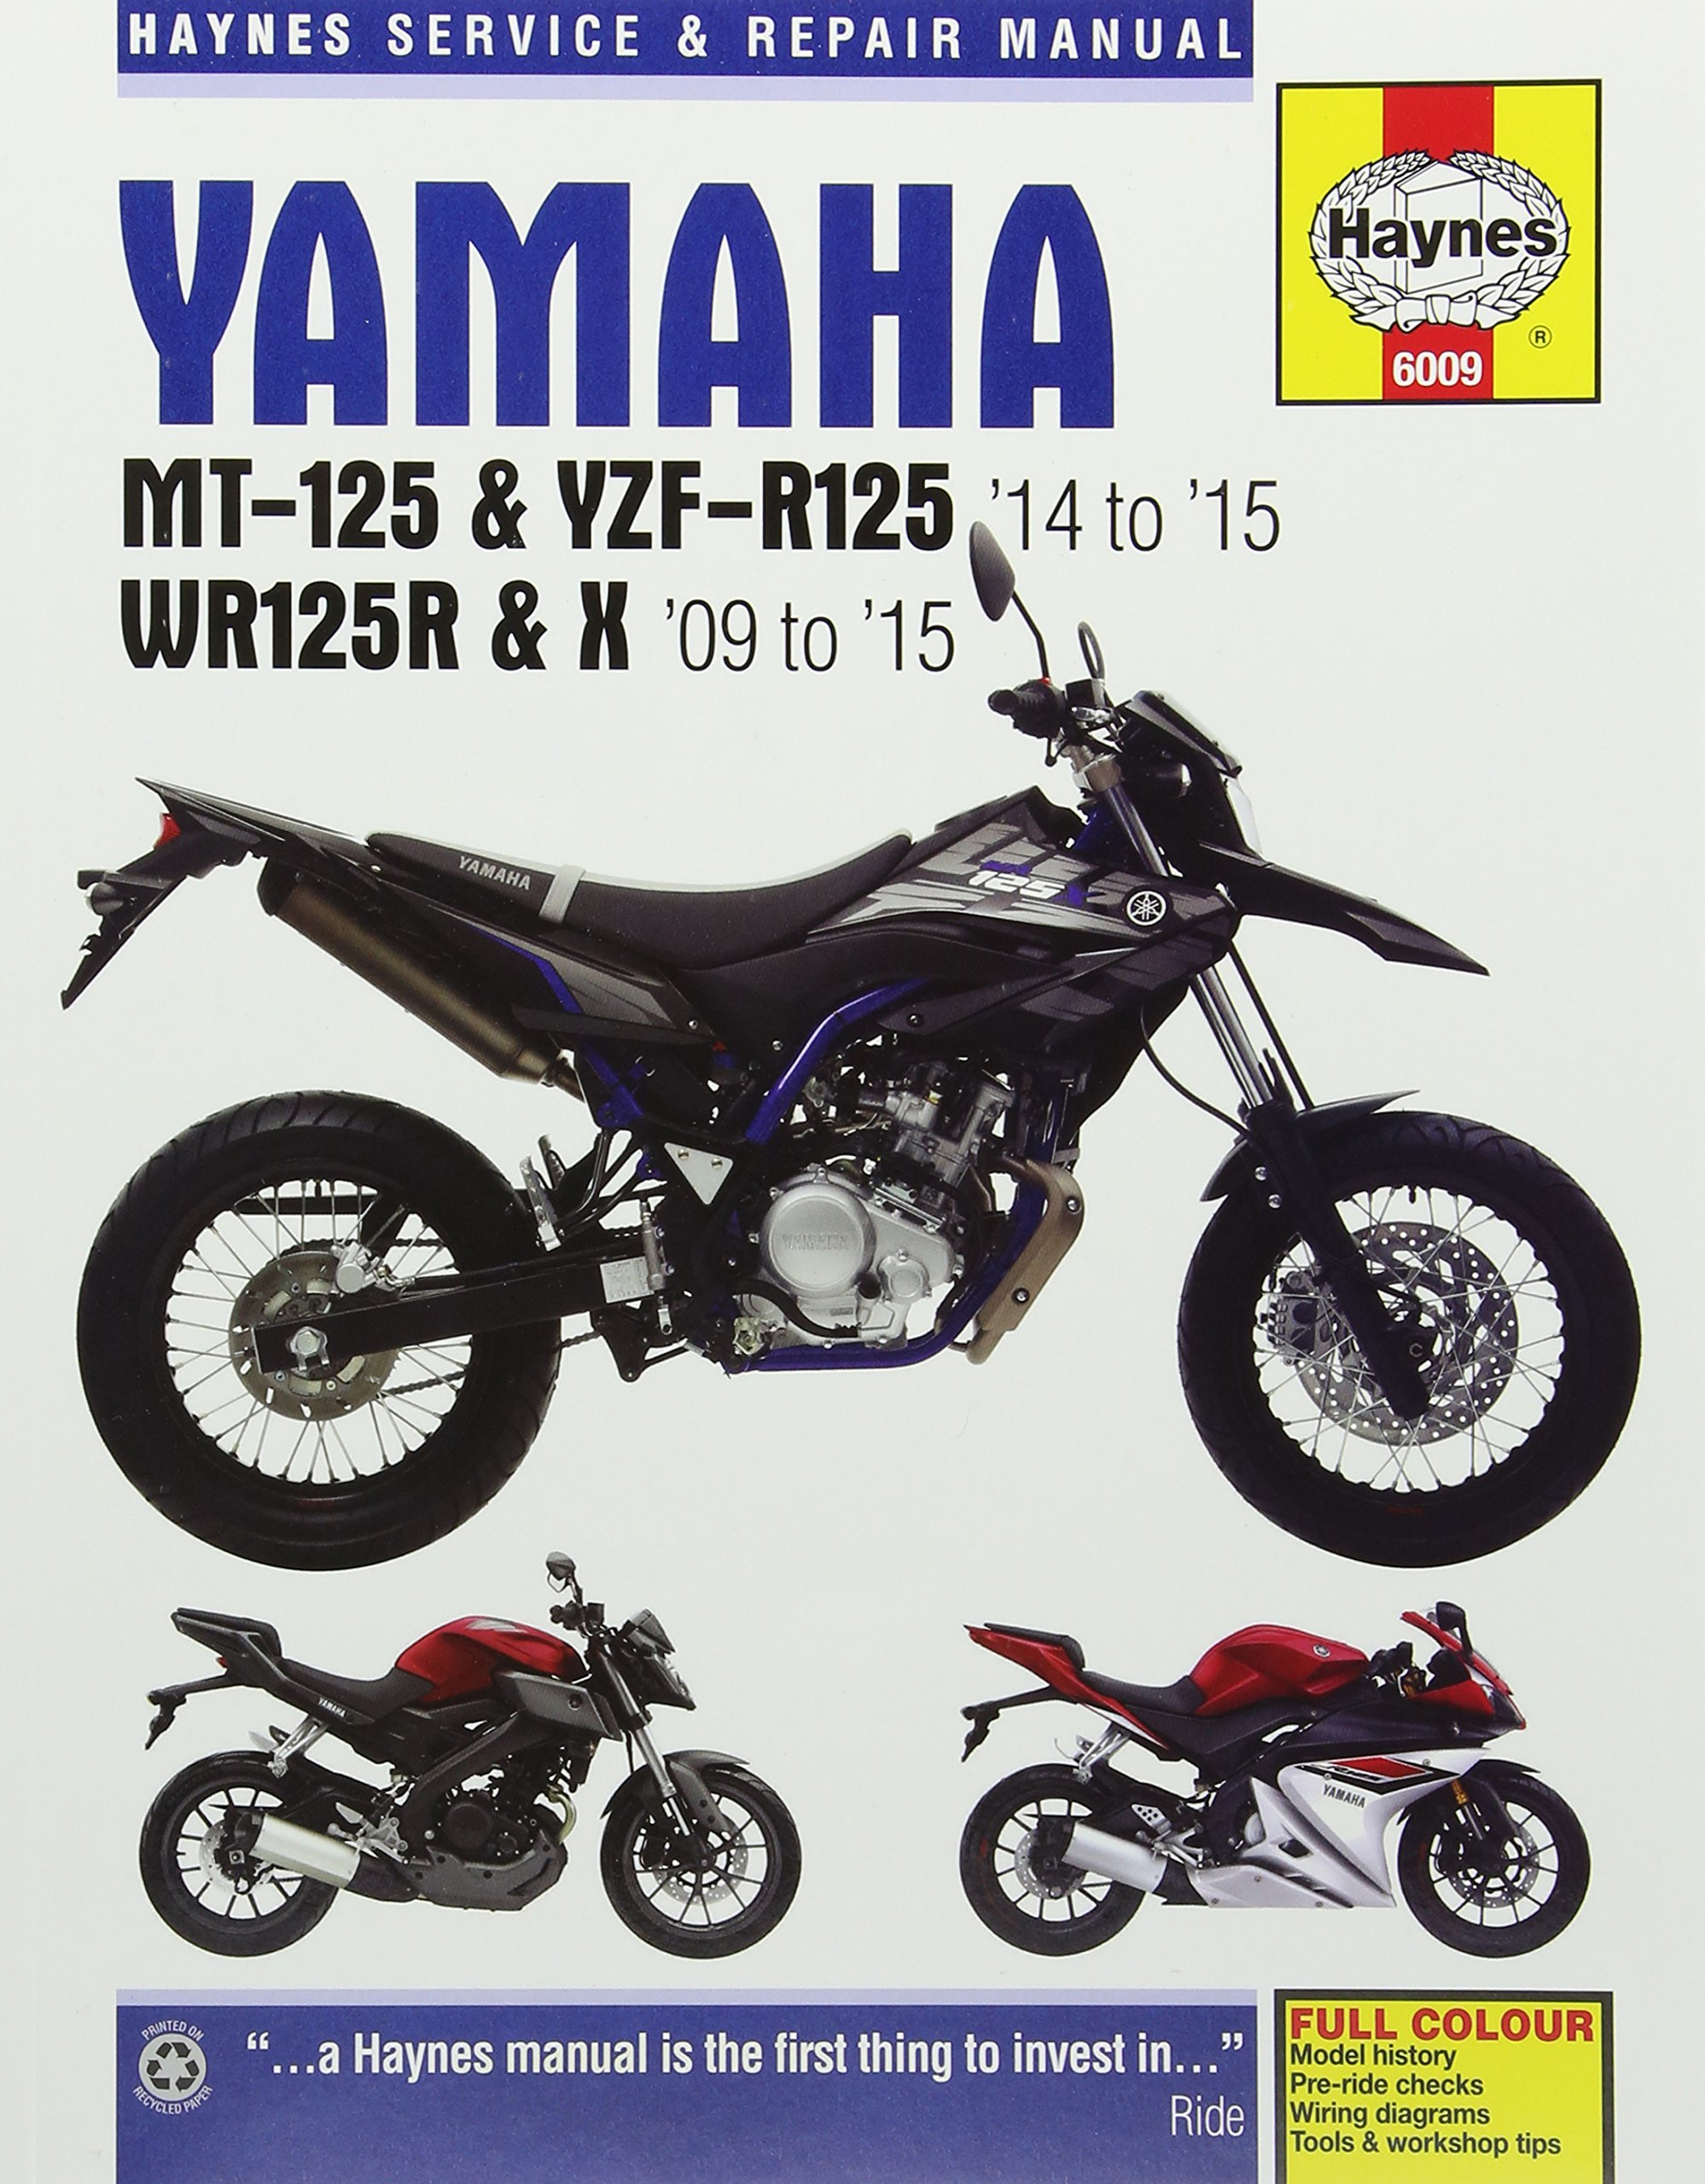 honda tl125 wiring diagram honda xr75 wiring diagram